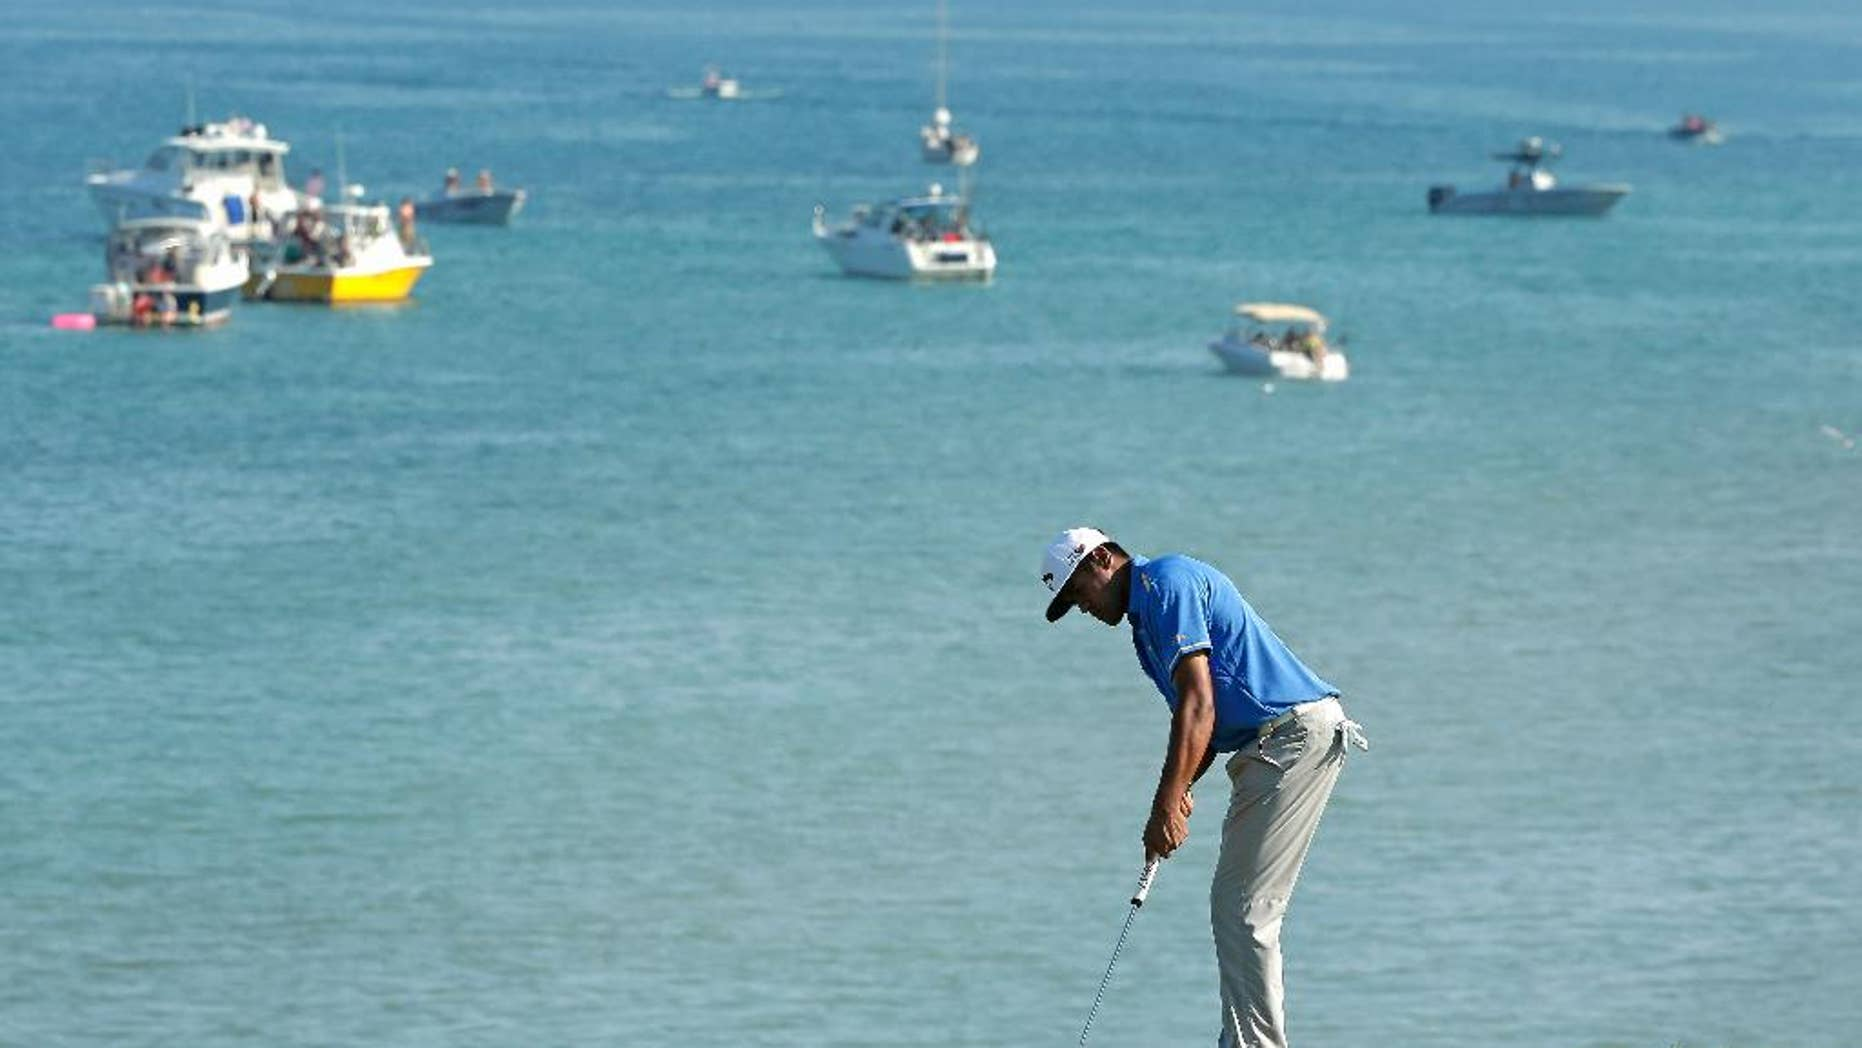 Tony Finau putts on the eighth hole during the third round of the PGA Championship golf tournament Saturday, Aug. 15, 2015, at Whistling Straits in Haven, Wis. (AP Photo/Chris Carlson)